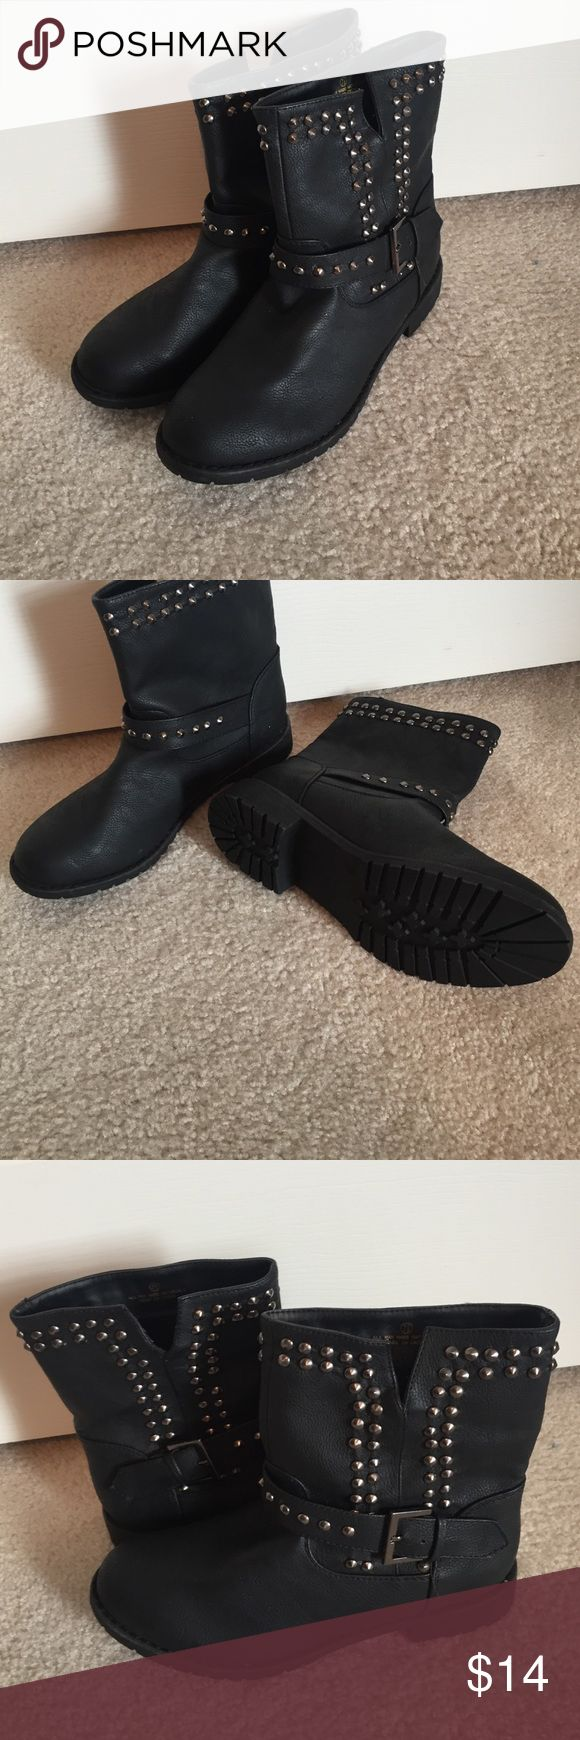 Studded Ankle Boots Short studded ankle boots, I've never worn them. Don't need them! Size 7.5, would be cute with jeans. Liliana Shoes Ankle Boots & Booties